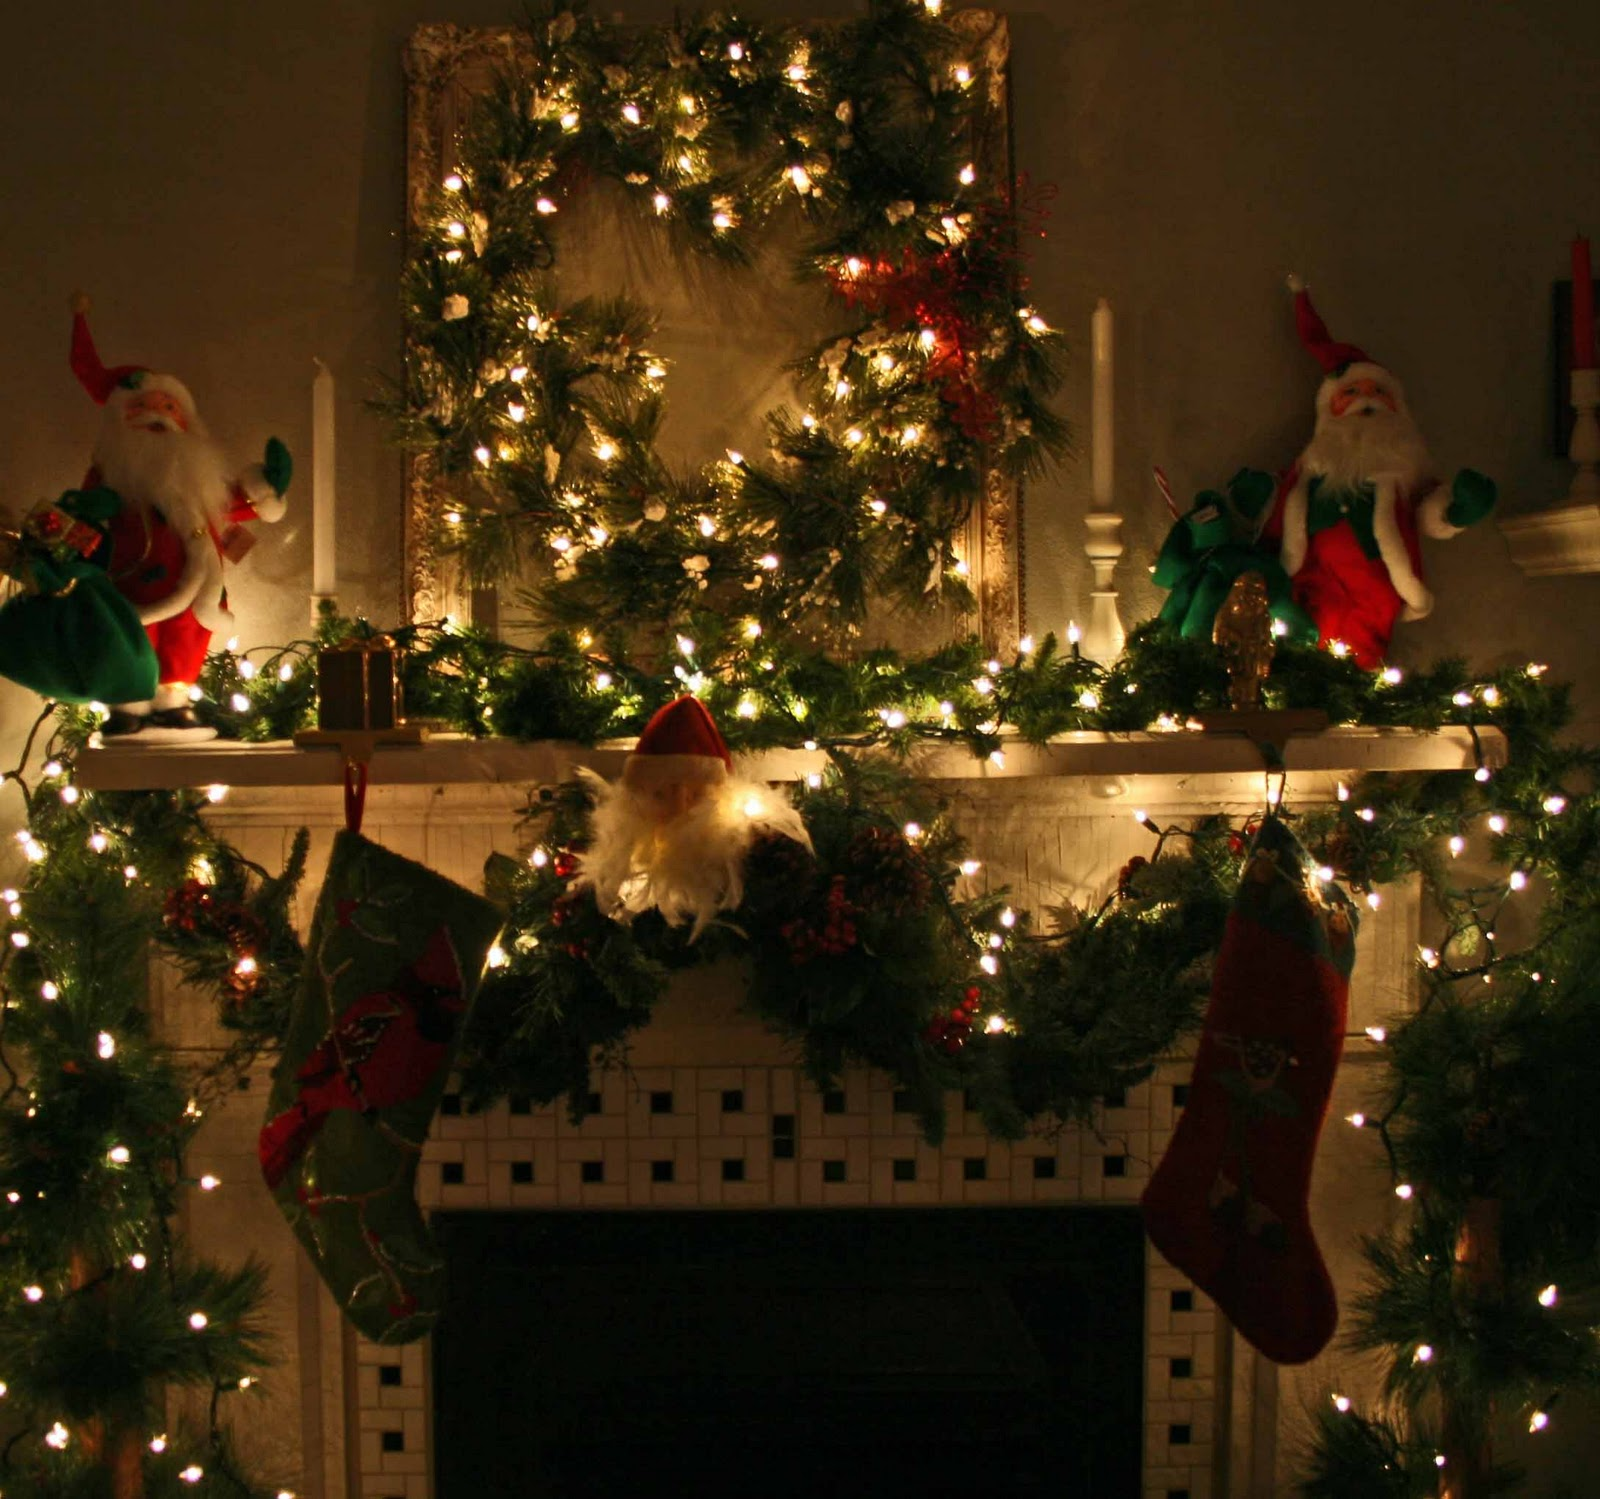 christmas fireplace fire holiday festive decorations 5 wallpaper 1600x1499